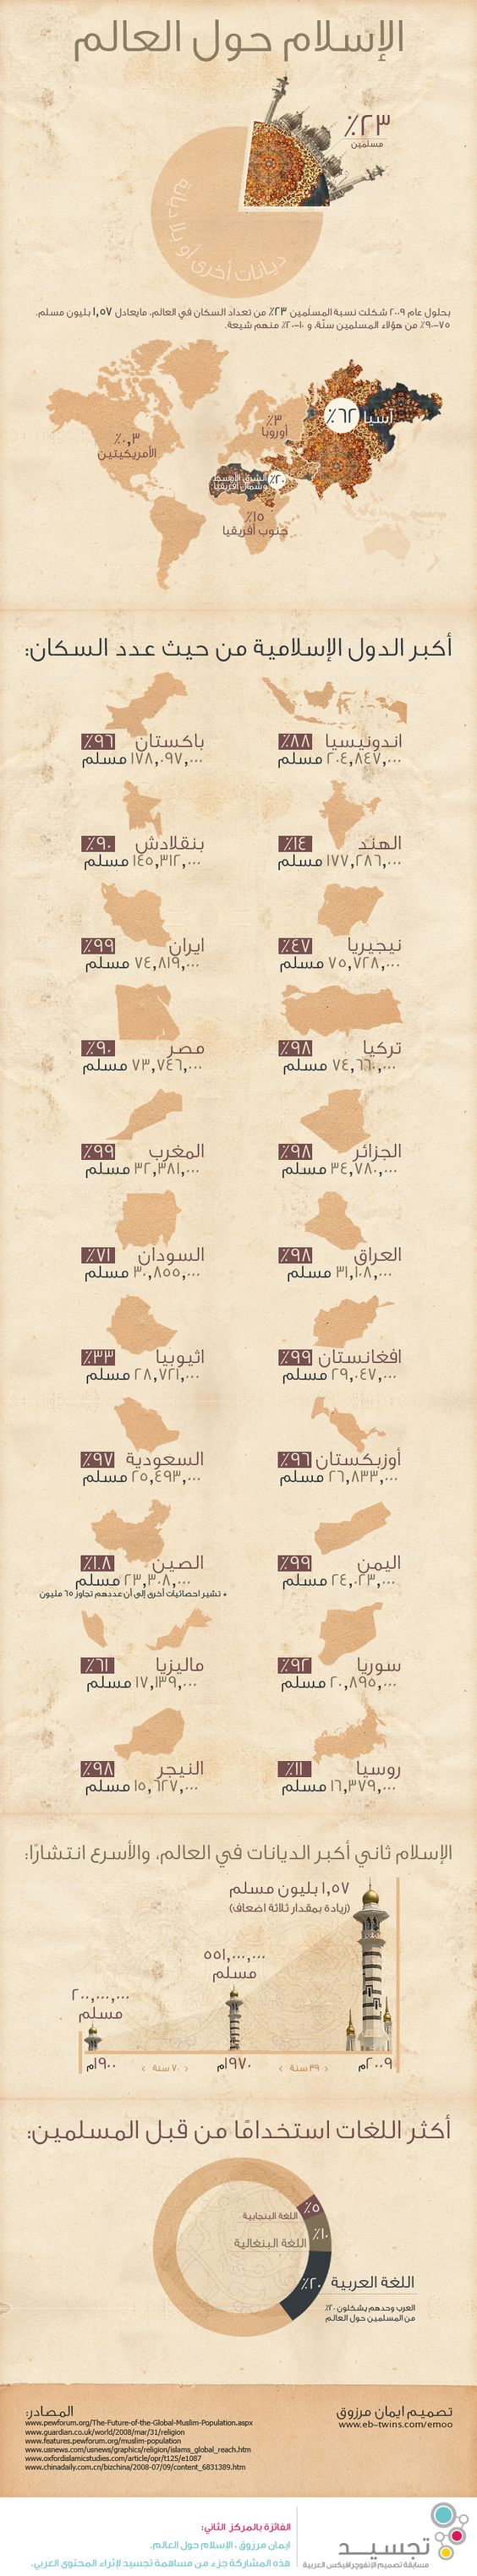 Islam around the world - Infographic (Arabic) by e-emoo on DeviantArt